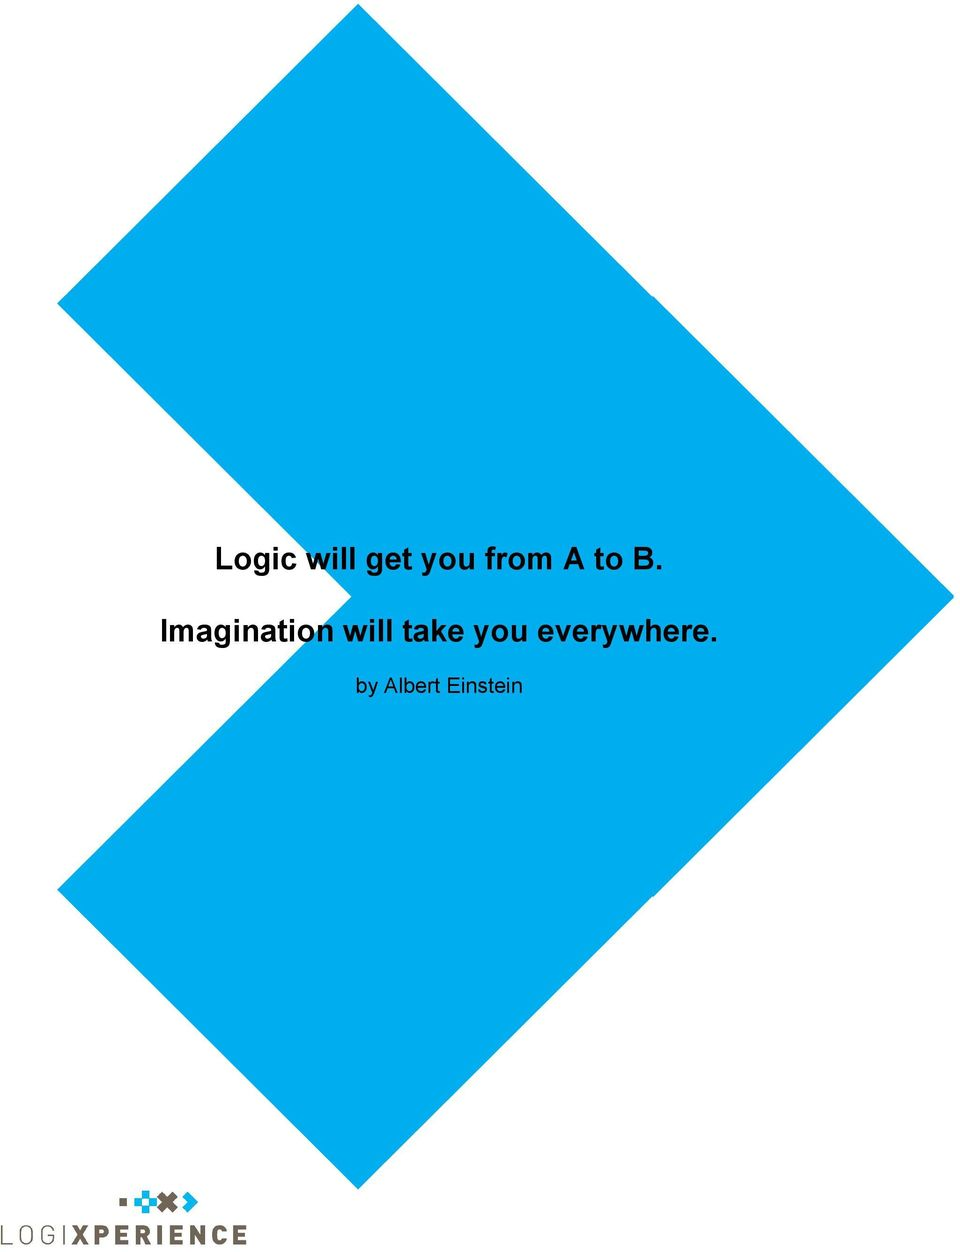 Imagination will take